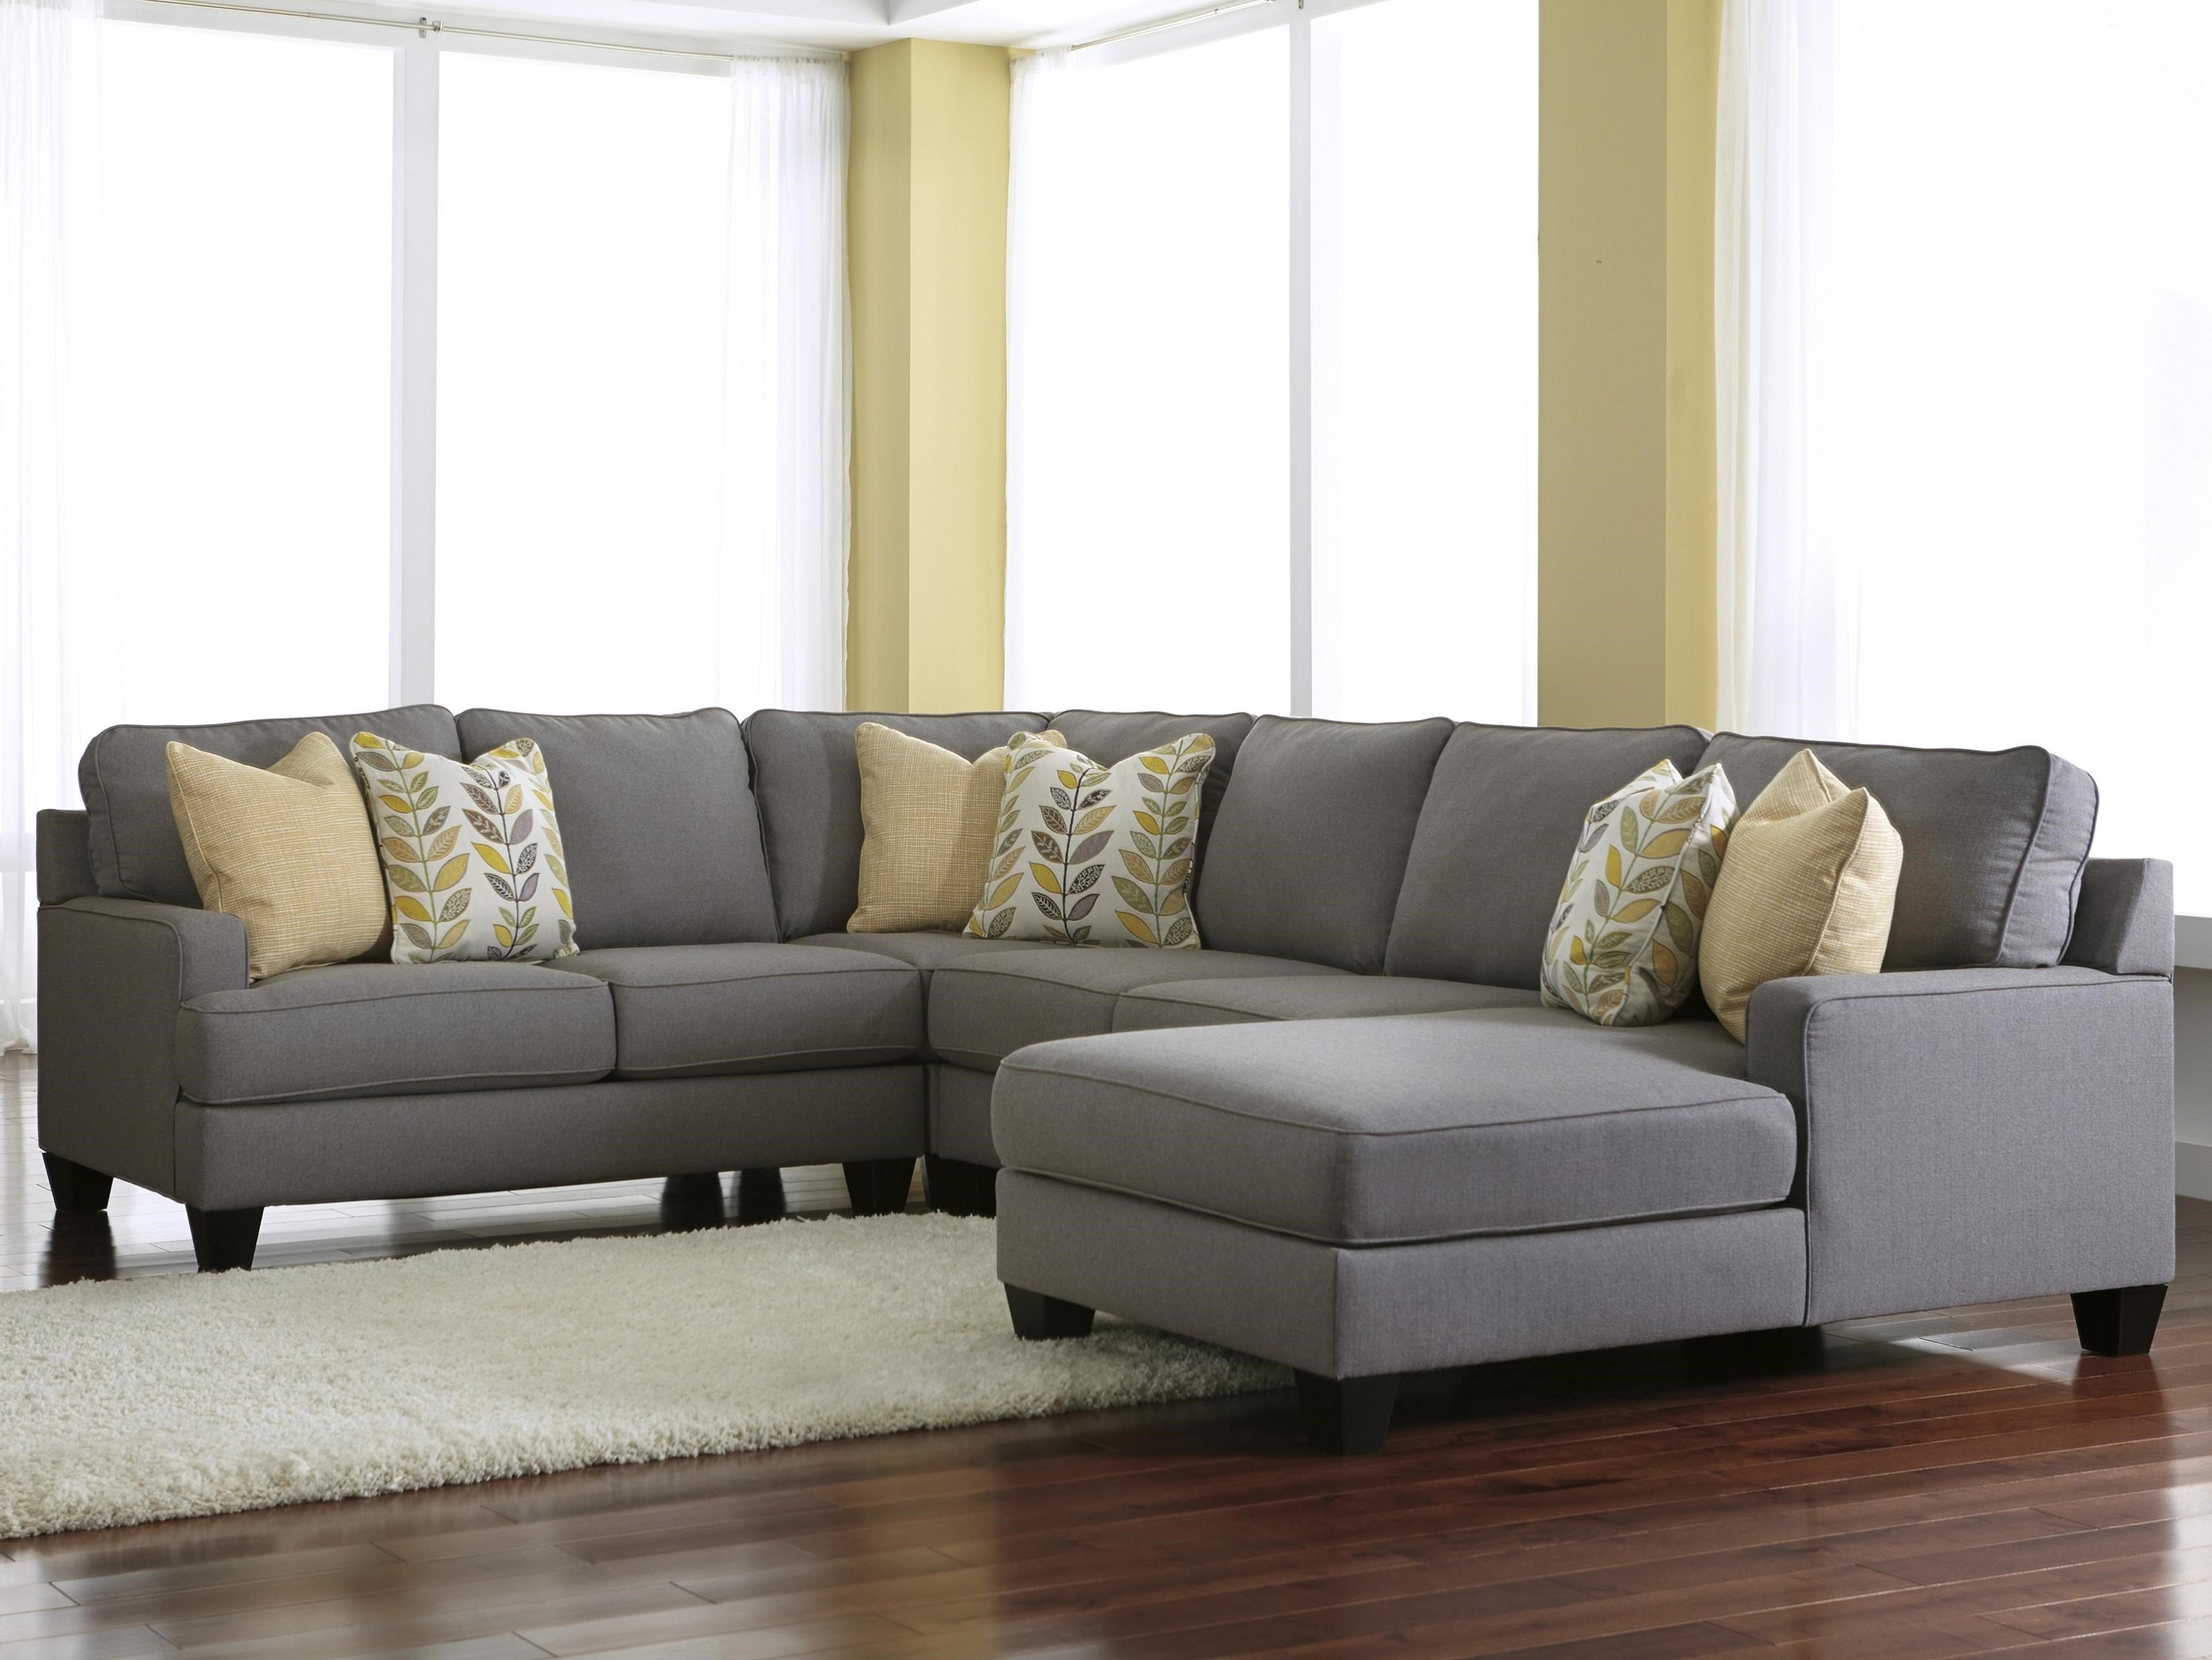 Signature Design By Ashley Chamberly   Alloy4 Piece Sectional Sofa With  Right Chaise ...